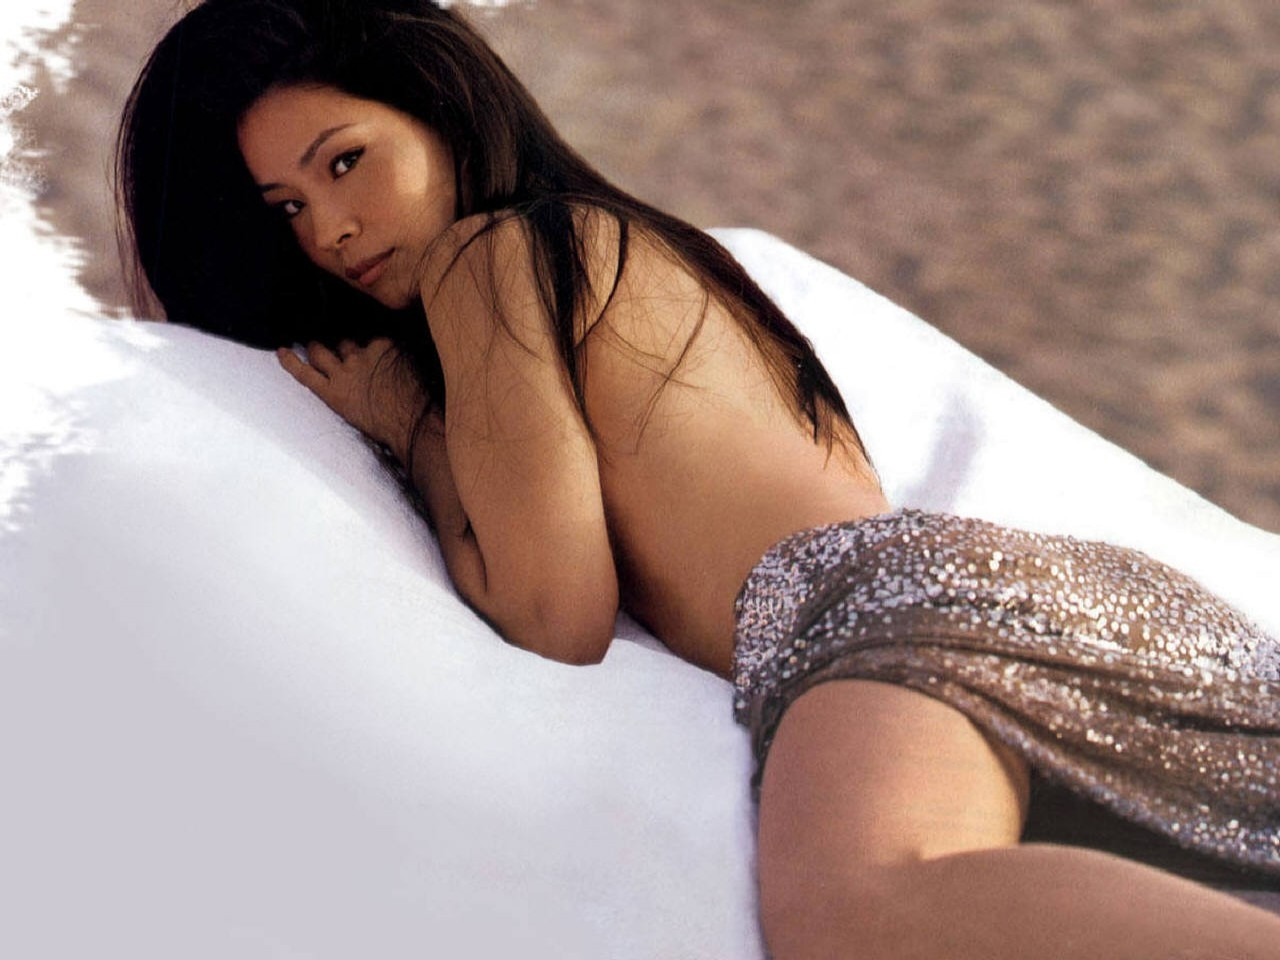 lucy liu on bed